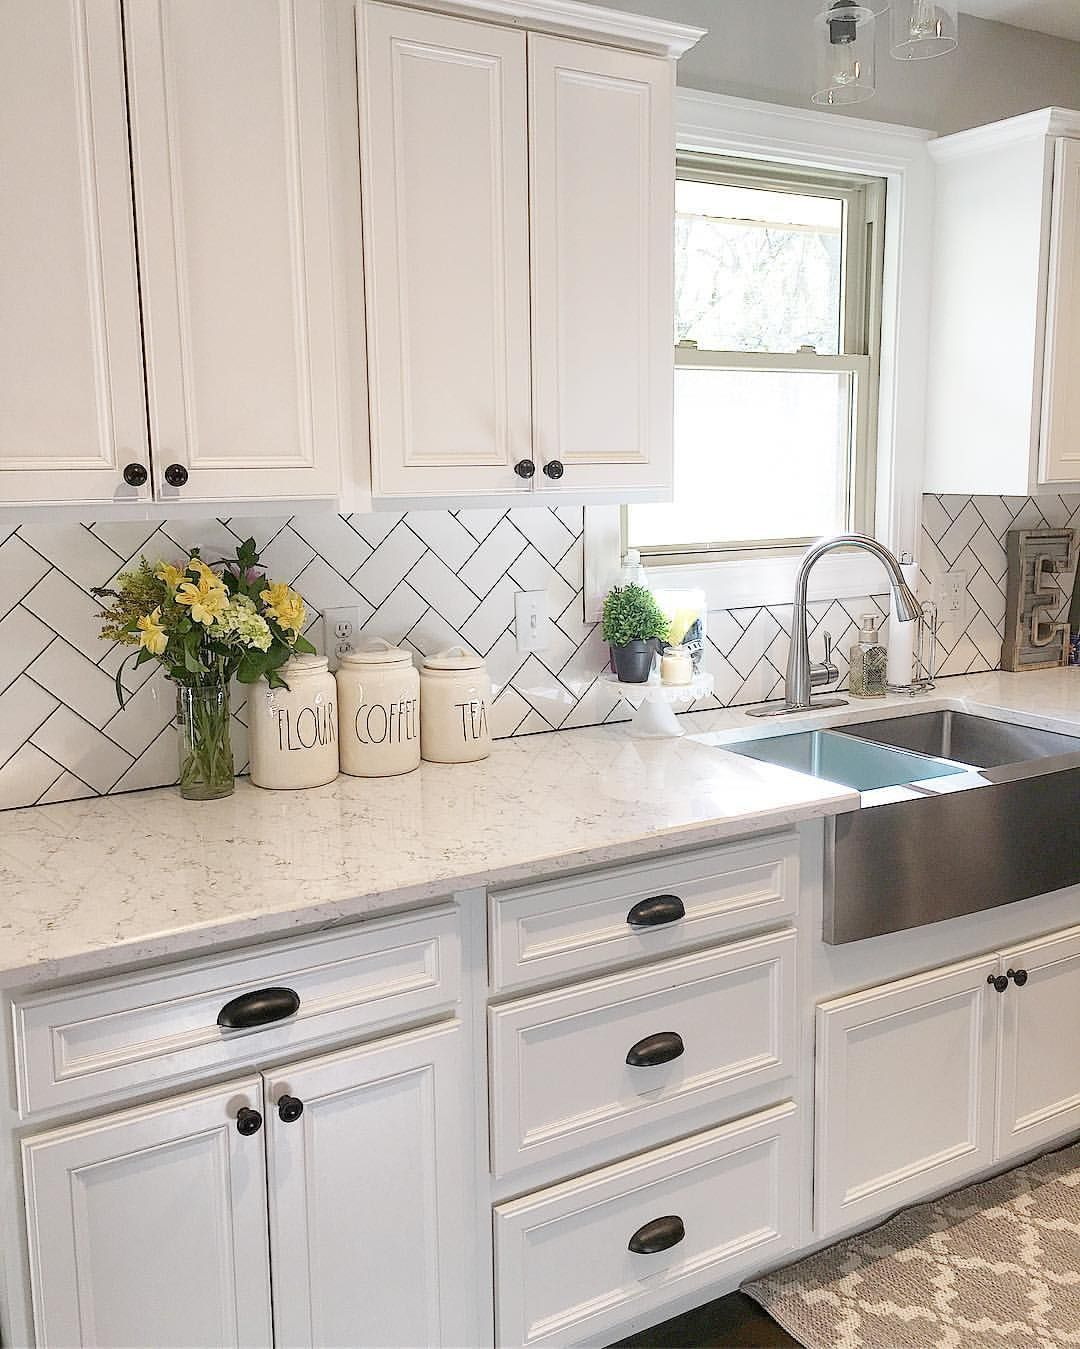 5 Tips On Buying Farmhouse Sink Lovely Kitchen Cabinet Design